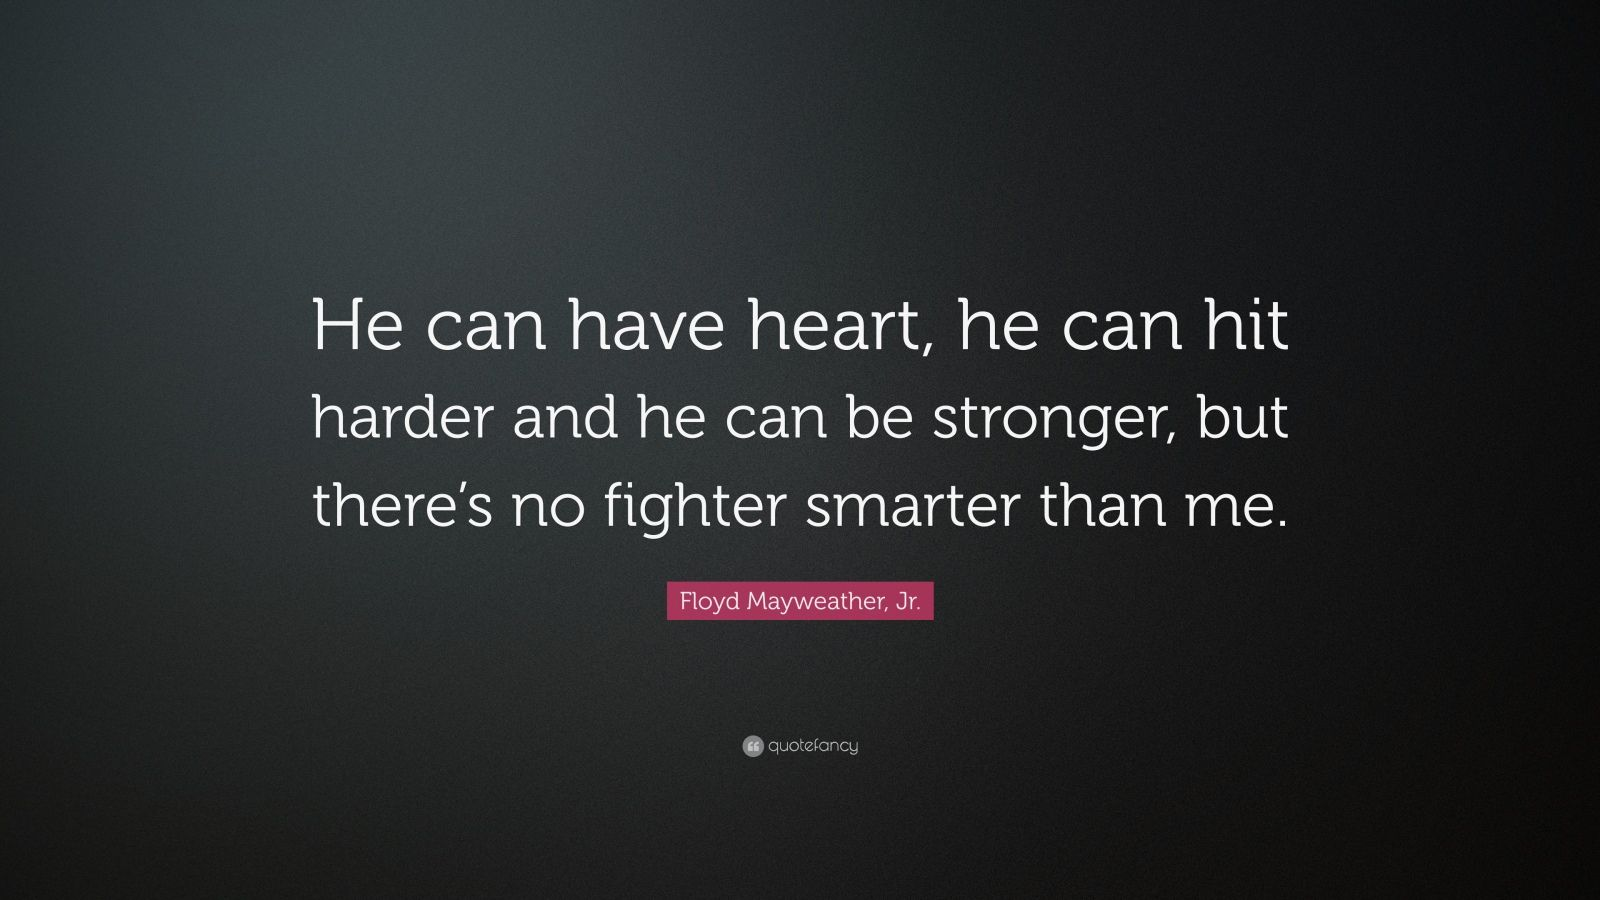 """Floyd Mayweather, Jr. Quote: """"He can have heart, he can hit harder and he can be stronger, but there's no fighter smarter than me."""""""